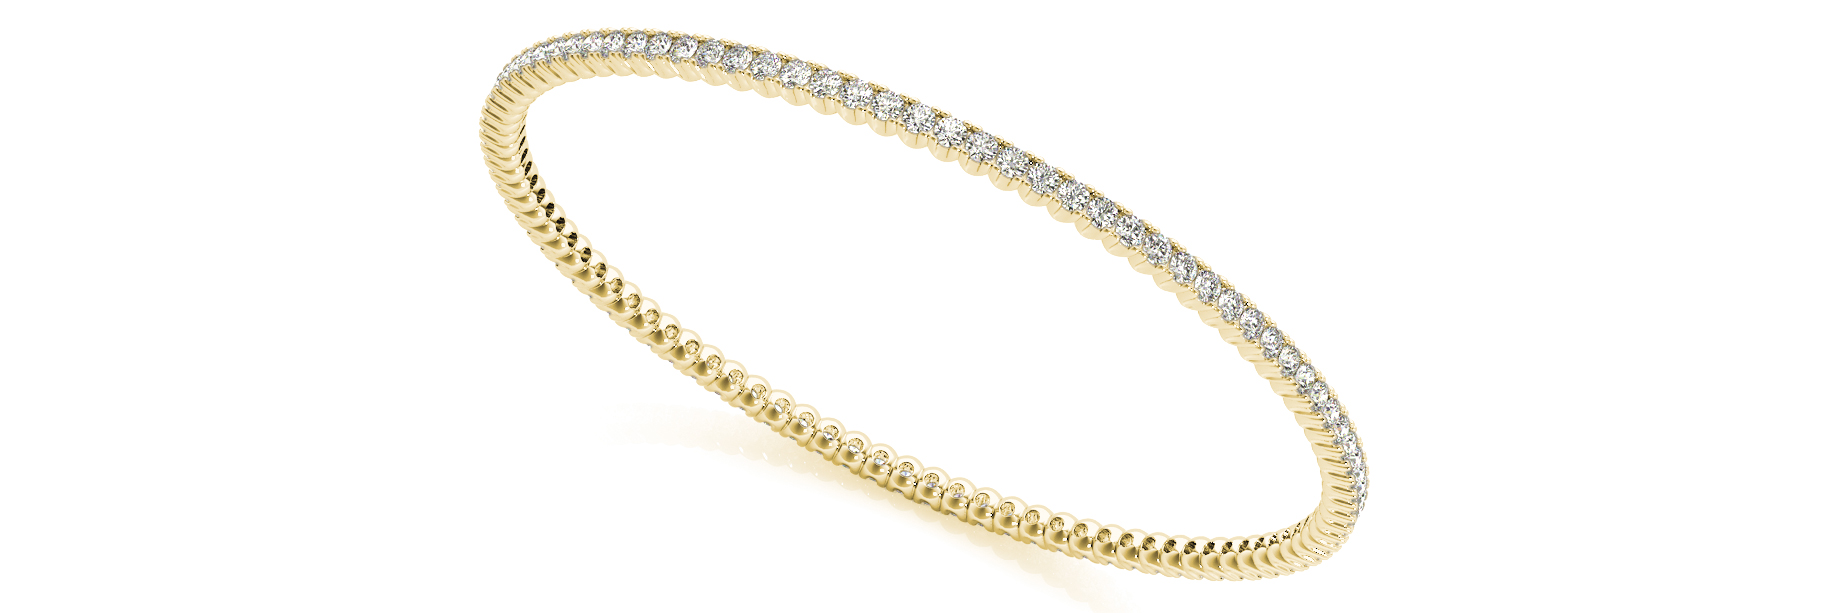 2.79 Carat Round Diamond Eternity Bangle in Yellow Gold